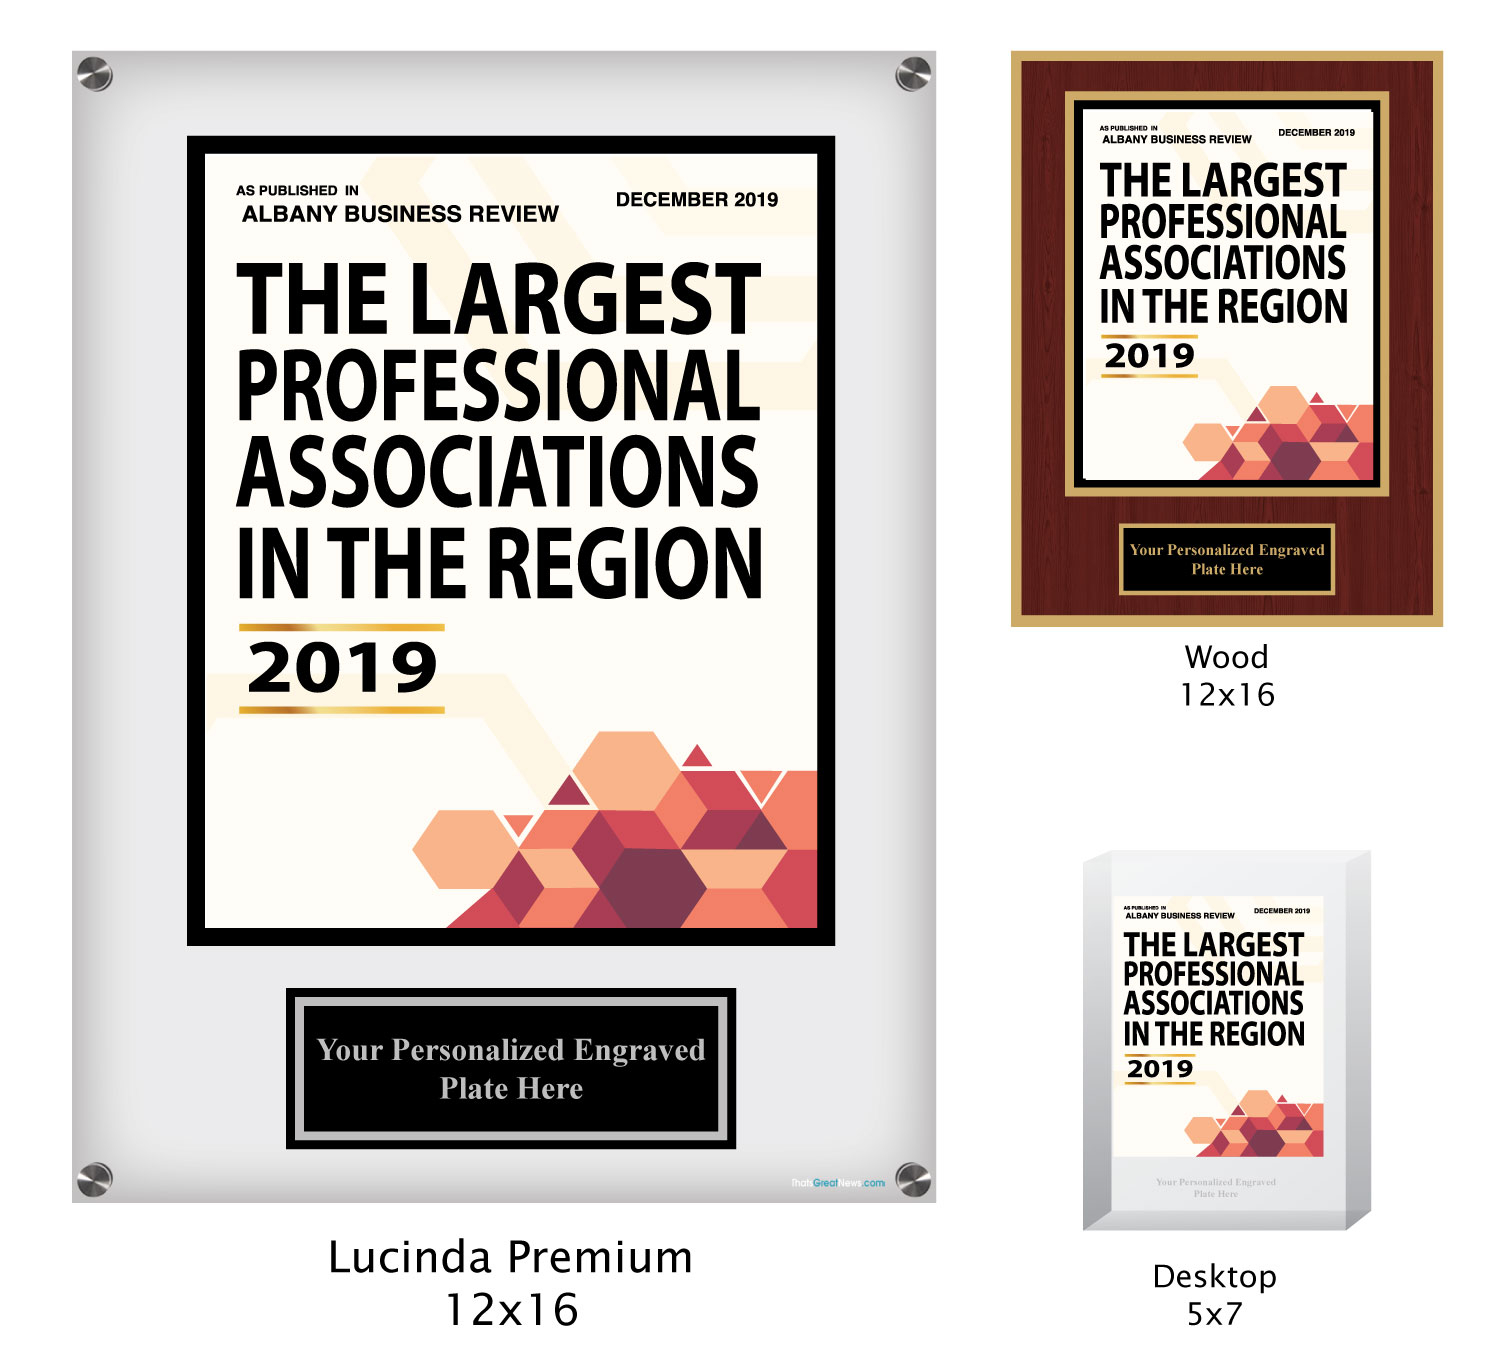 THE-LARGEST-PROFESSIONAL-ASSOCIATIONS-IN-THE-REGION.jpg